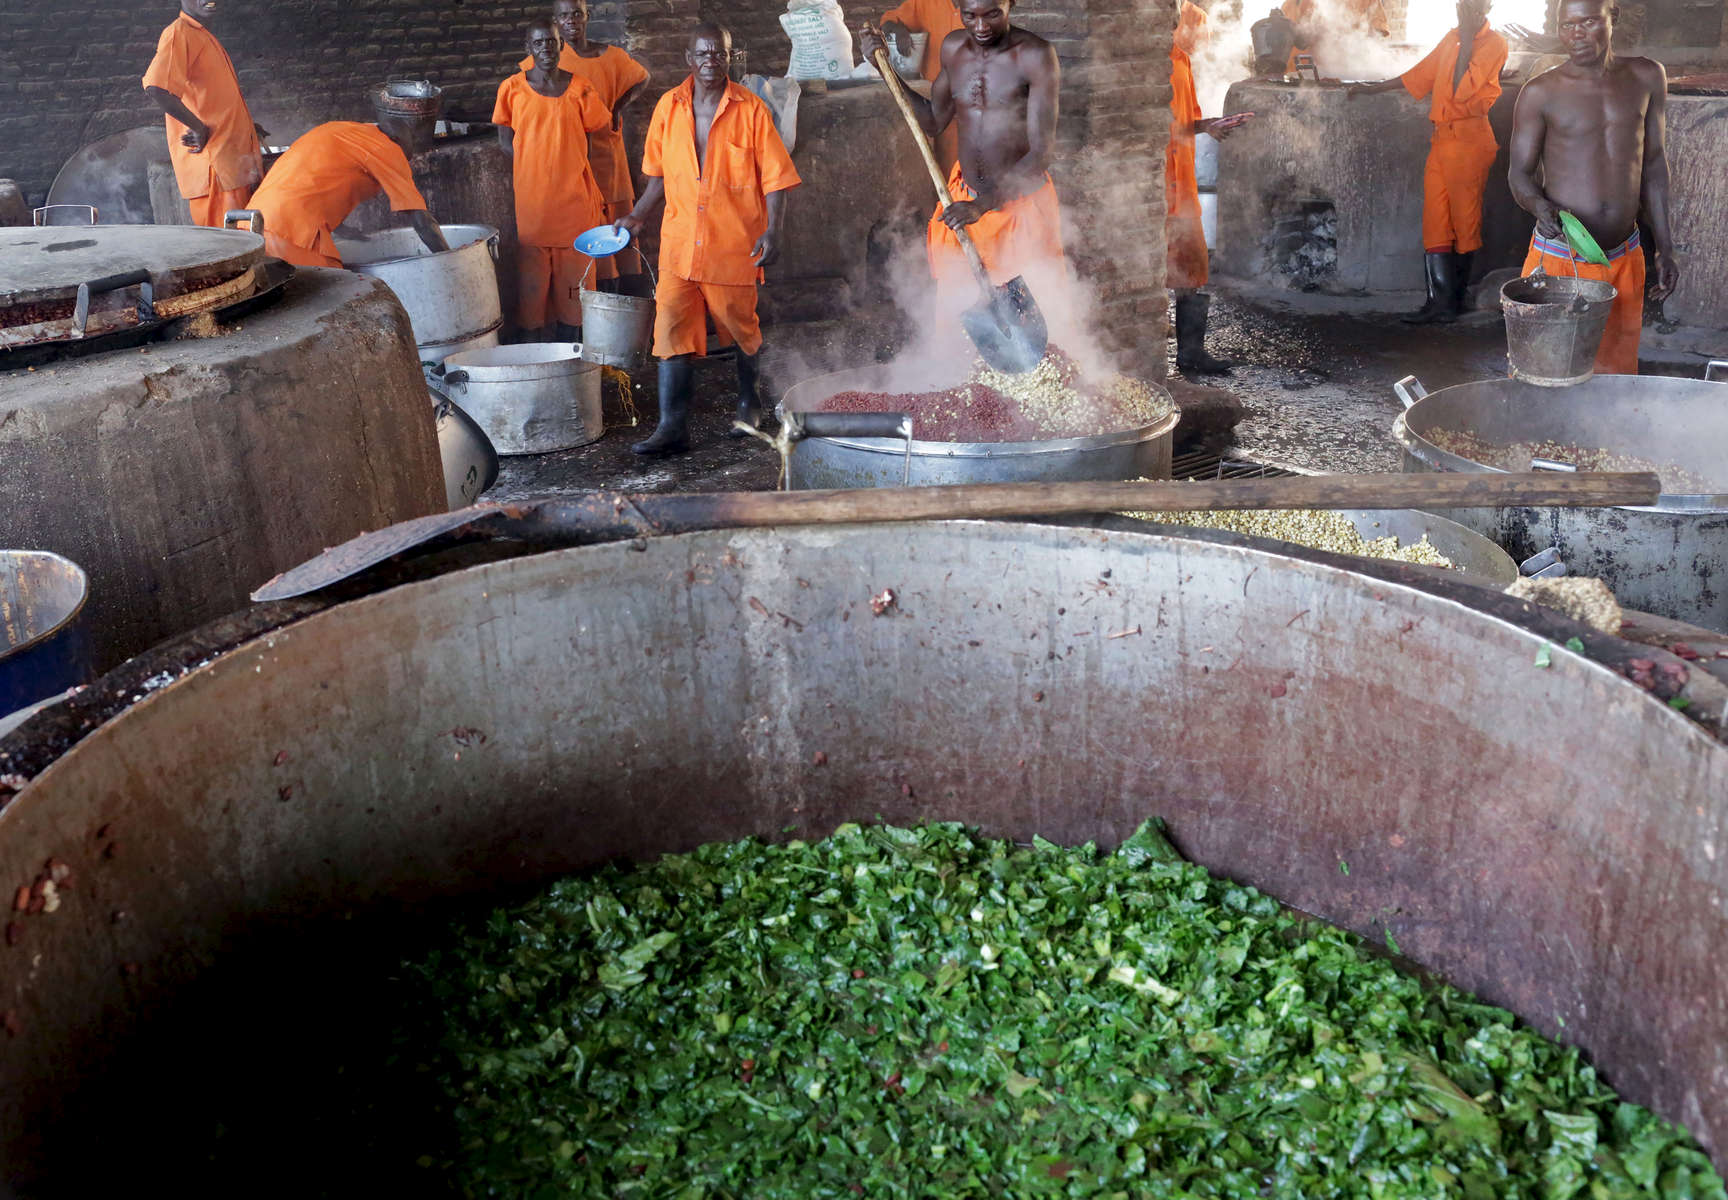 Prisoners cook food via peat and biogas at Rwamagana Prison in Rwamagana, Rwanda, on November 18, 2017. All of Rwanda's prisons use their prisoners' waste - in addition to that of cows - to fuel their kitchens via biogas. At Rwamagana, biogas is used to cook corn, and peat cooks rice and beans. Many prisoners say they can usually tell when biogas is used due to the lack of smokey flavor in food. Nearly half of all Rwandans live in poverty, relying on small-scale farming for survival without gas or electricity. With so many women and children spending hours of the day foraging for wood used for cooking and light, often damaging their eyes, lungs, the forests and atmosphere, a little inventiveness helps. Enter cow and enter pig — not just as a source of food, but also the heat needed to cook it. Or more specifically, their poo — the fuel fed to a biogas digester, a tank that coverts organic waste into methane. Photographs by: Yana Paskova